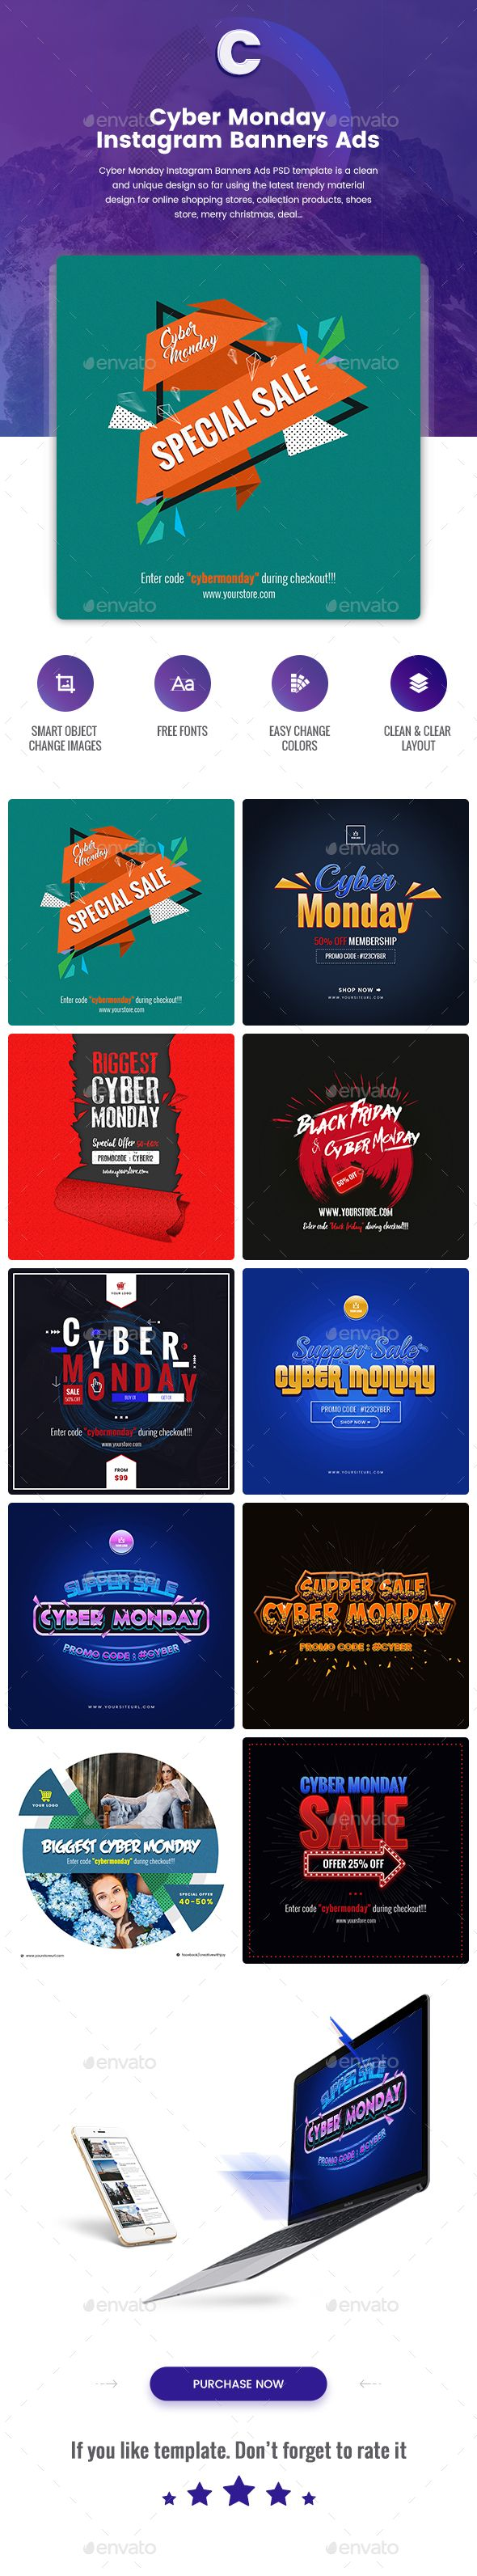 Cyber Monday Instagram Banners Ads - 10 PSD [NewSize]  Download Here :  https://graphicriver.net/item/cyber-monday-instagram-banners-ads-10-psd-newsize/19002197?ref=iDoodle